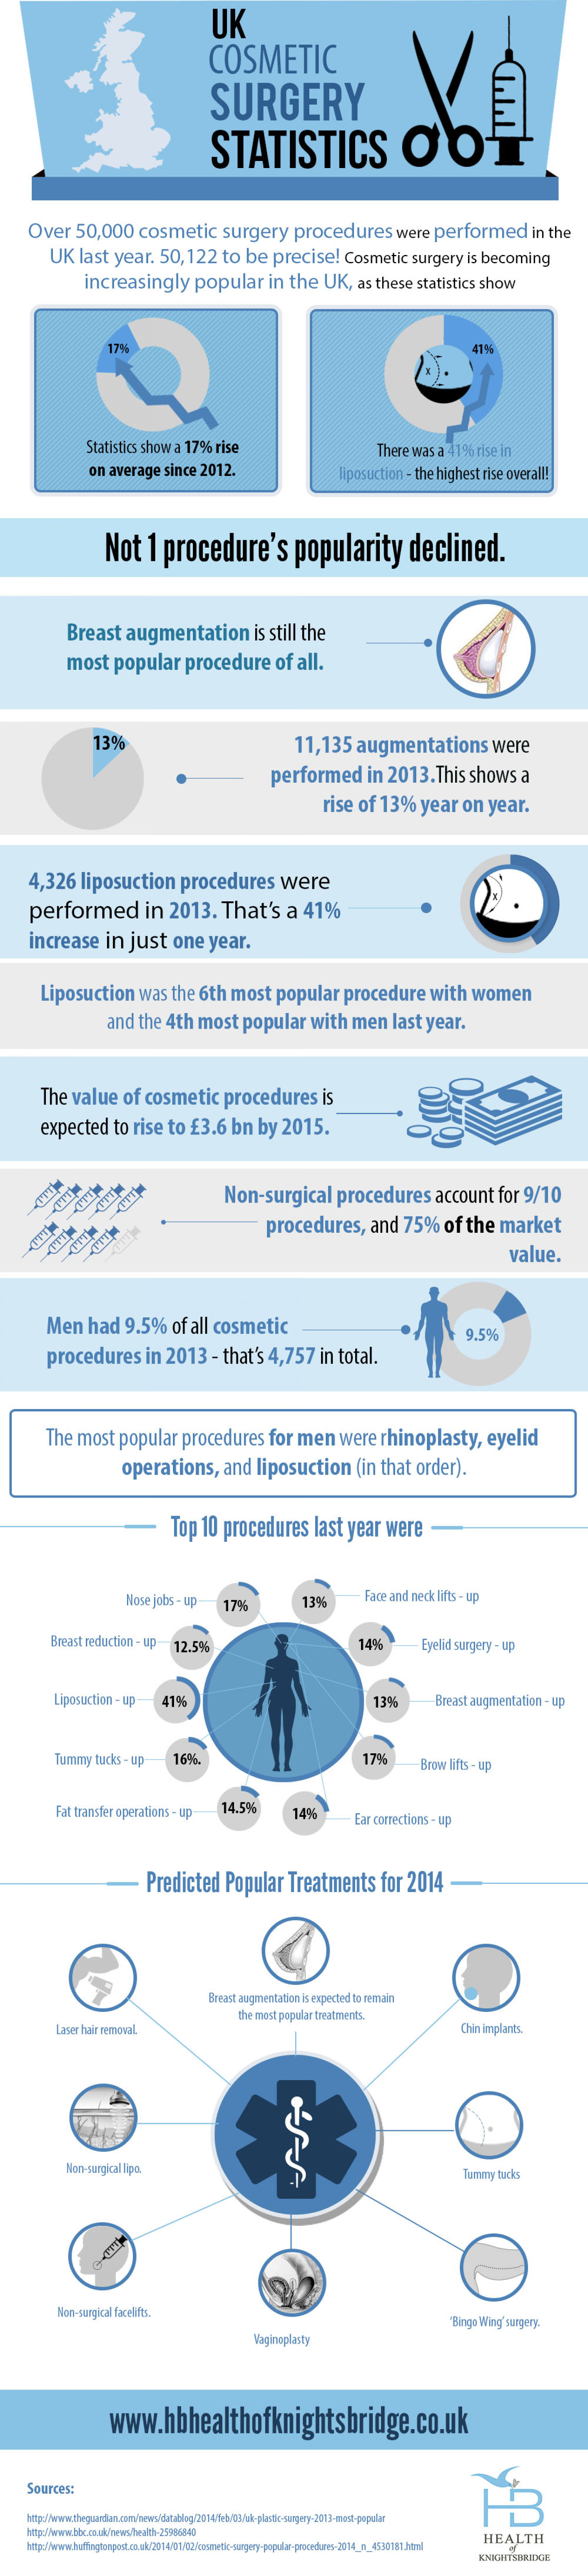 UK Cosmetic Surgery Statistics Infographic